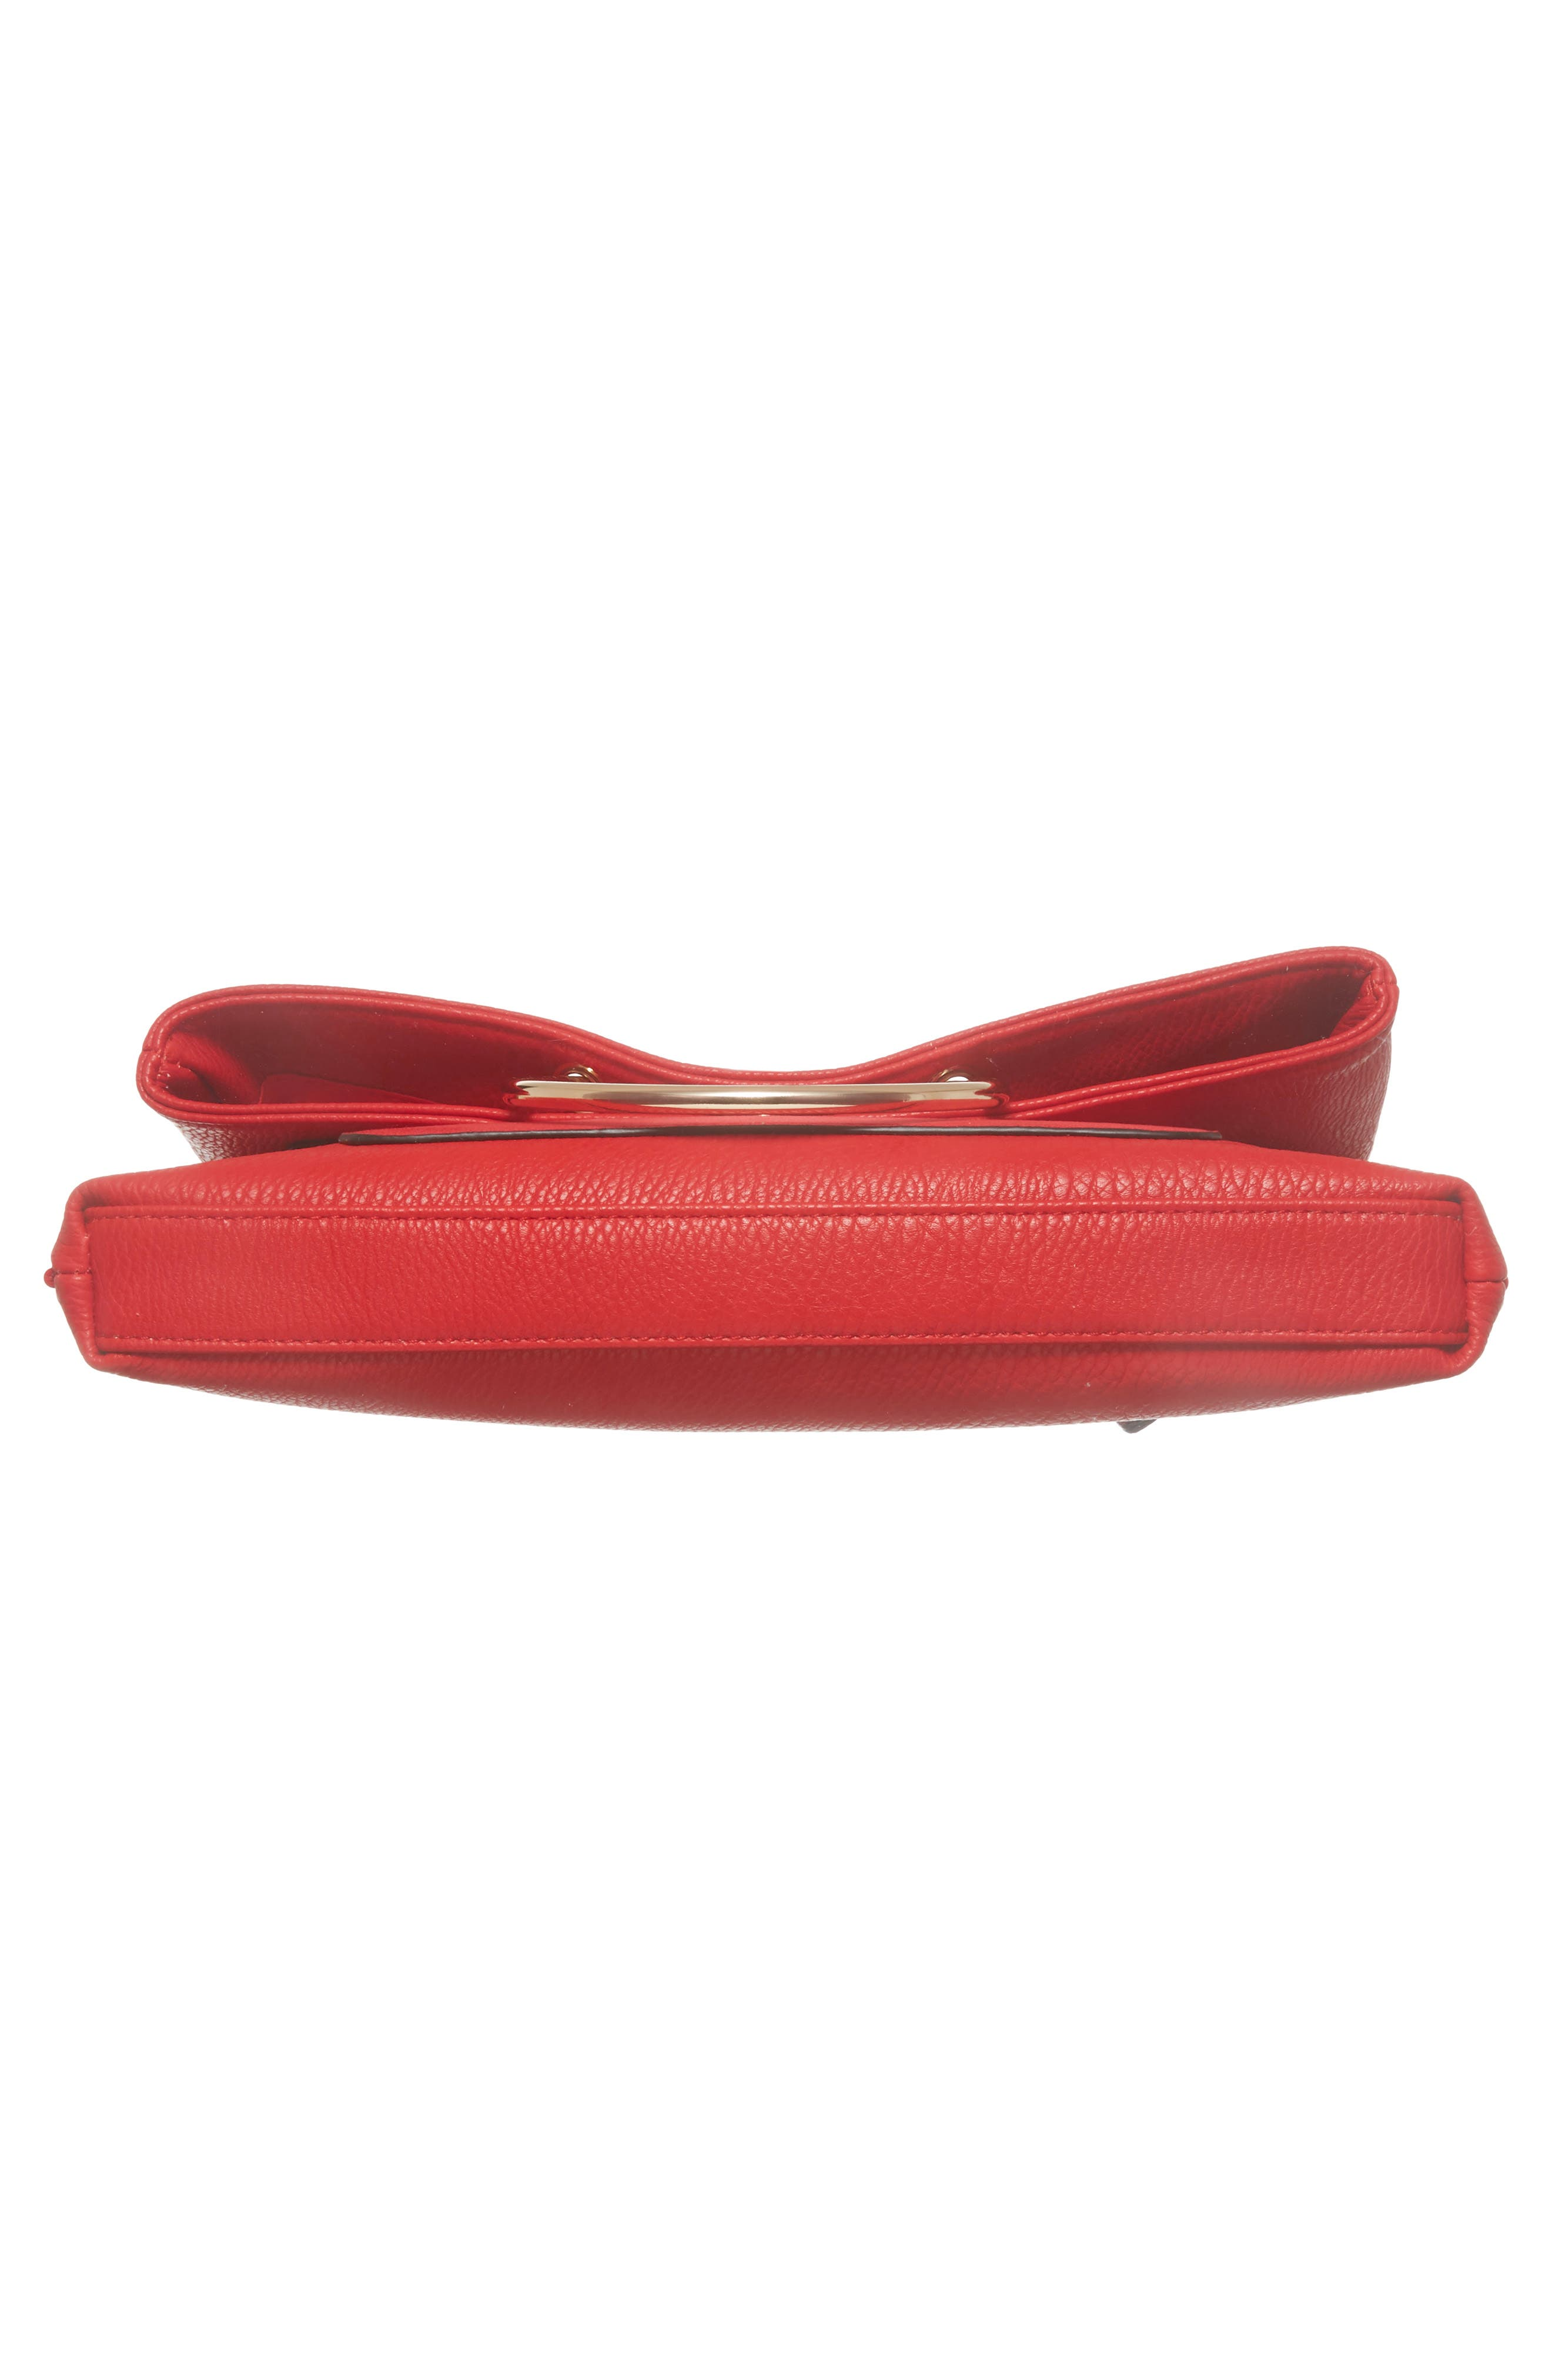 Foldover Ring Clutch,                             Alternate thumbnail 6, color,                             RED